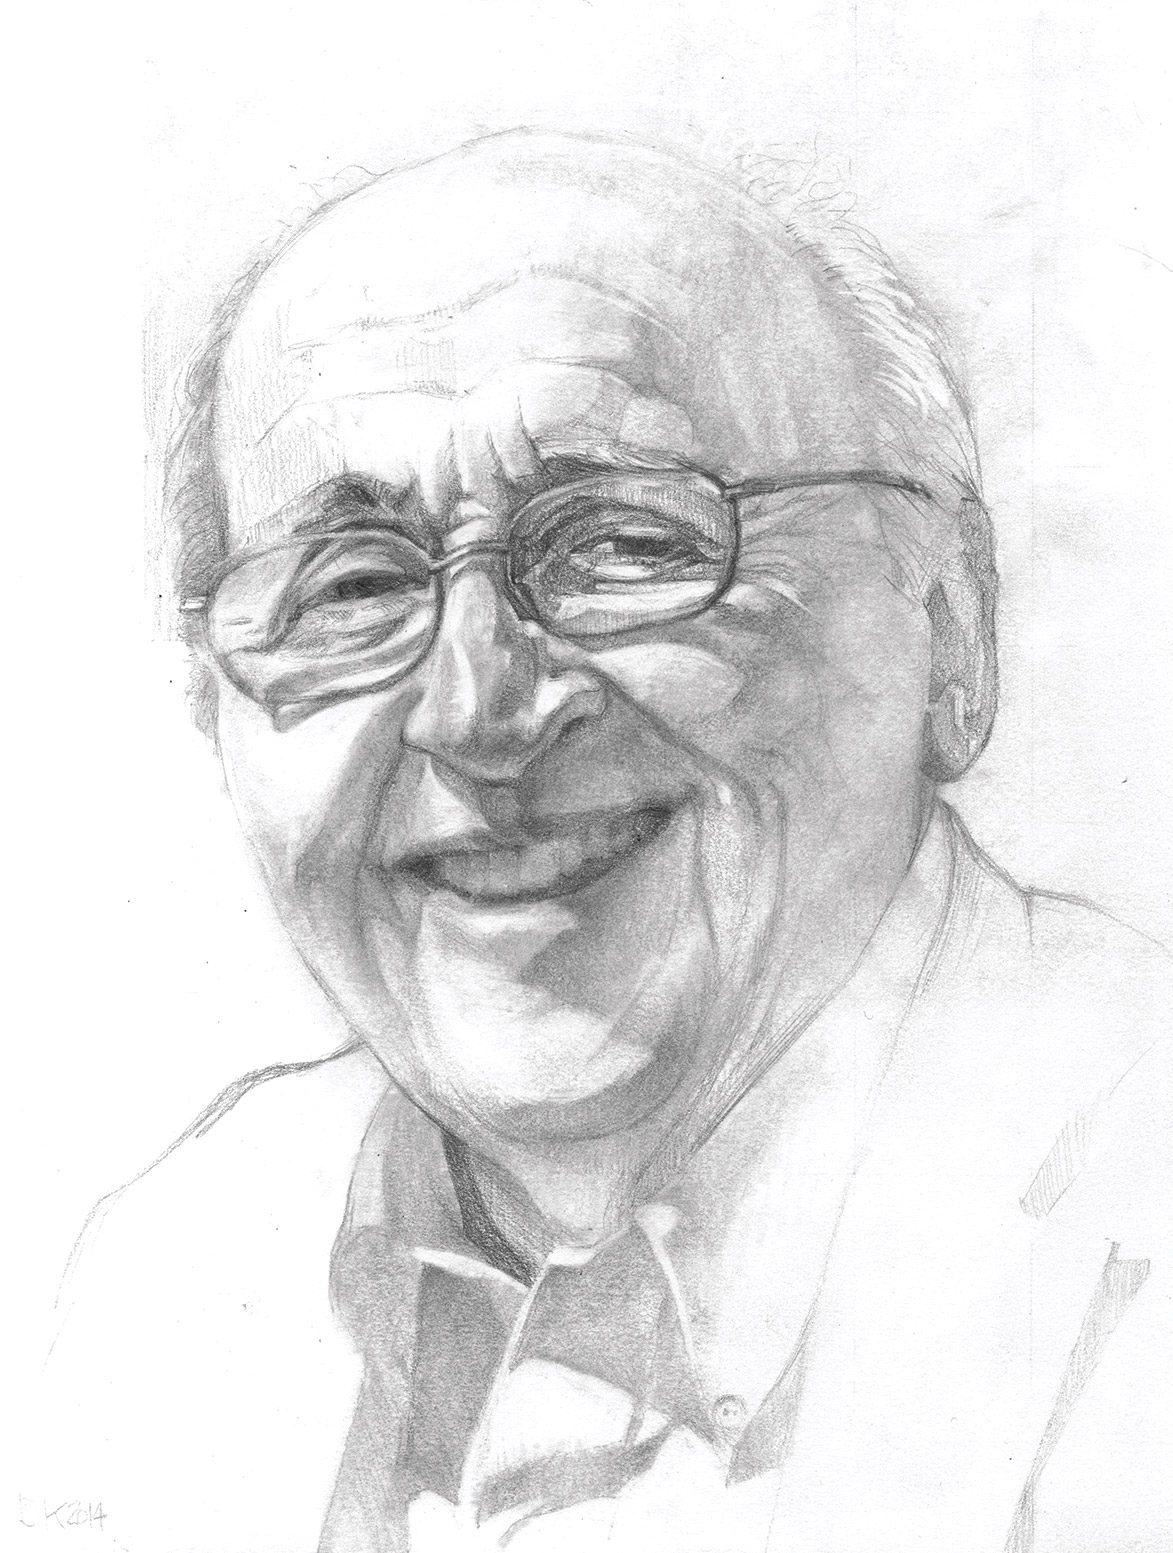 Pencil sketch of Fuller Seminary's fourth president, Richard J. Mouw